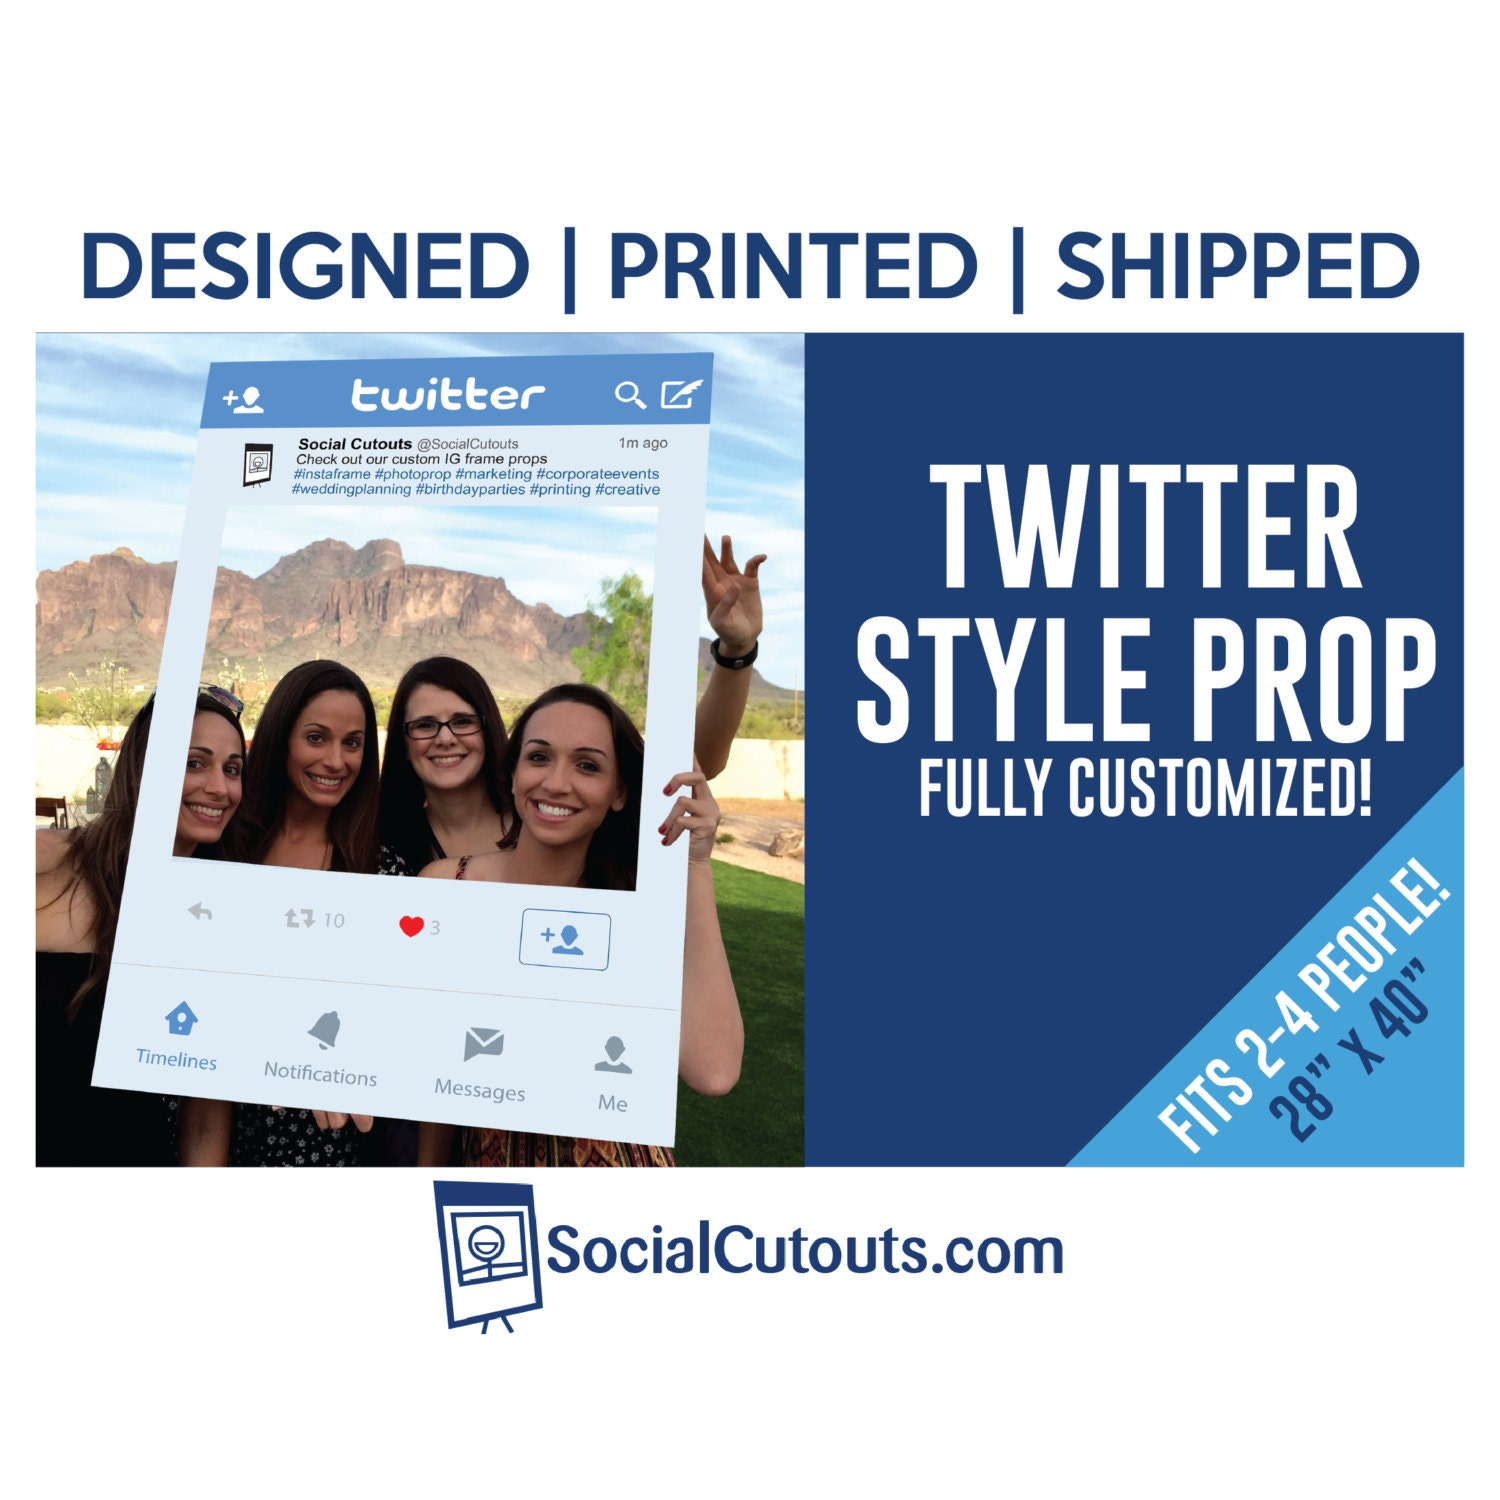 Twitter Frame Printed and Shipped to you. Fully Customized